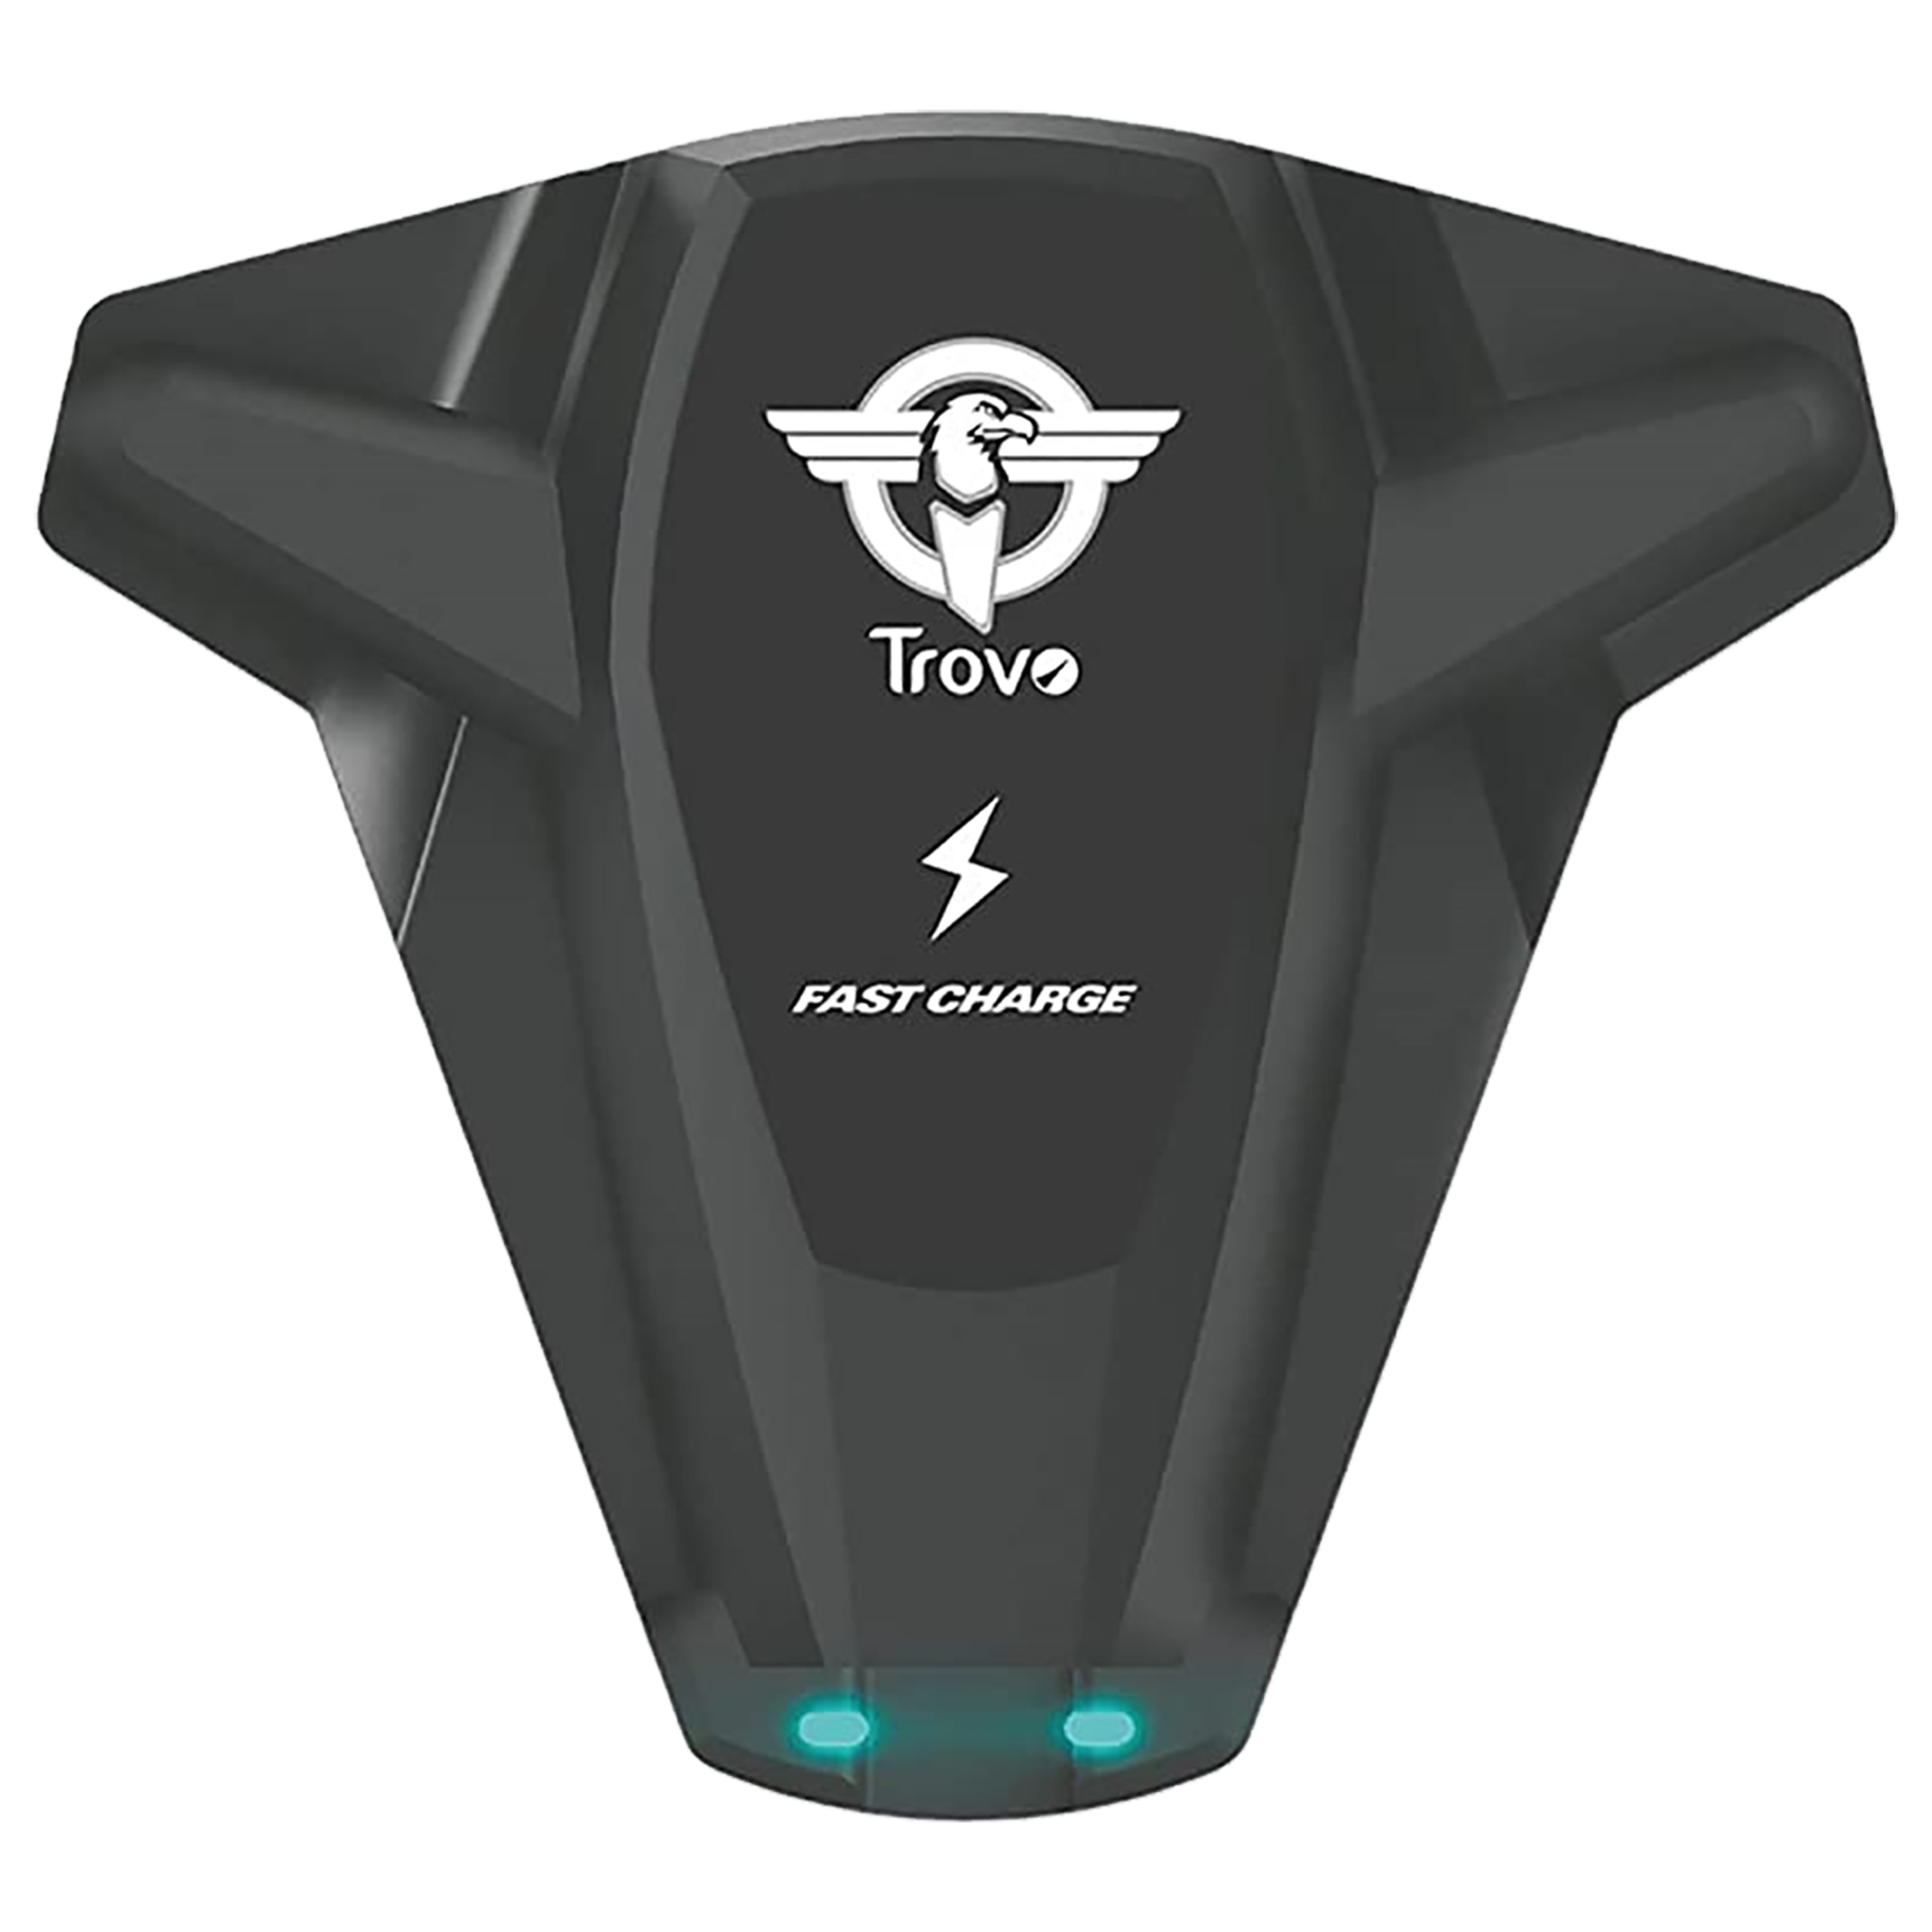 Trovo 10 Watts 2 USB Ports Car Charging Adapter (Portable Palm Size, TWH-101, Black)_1